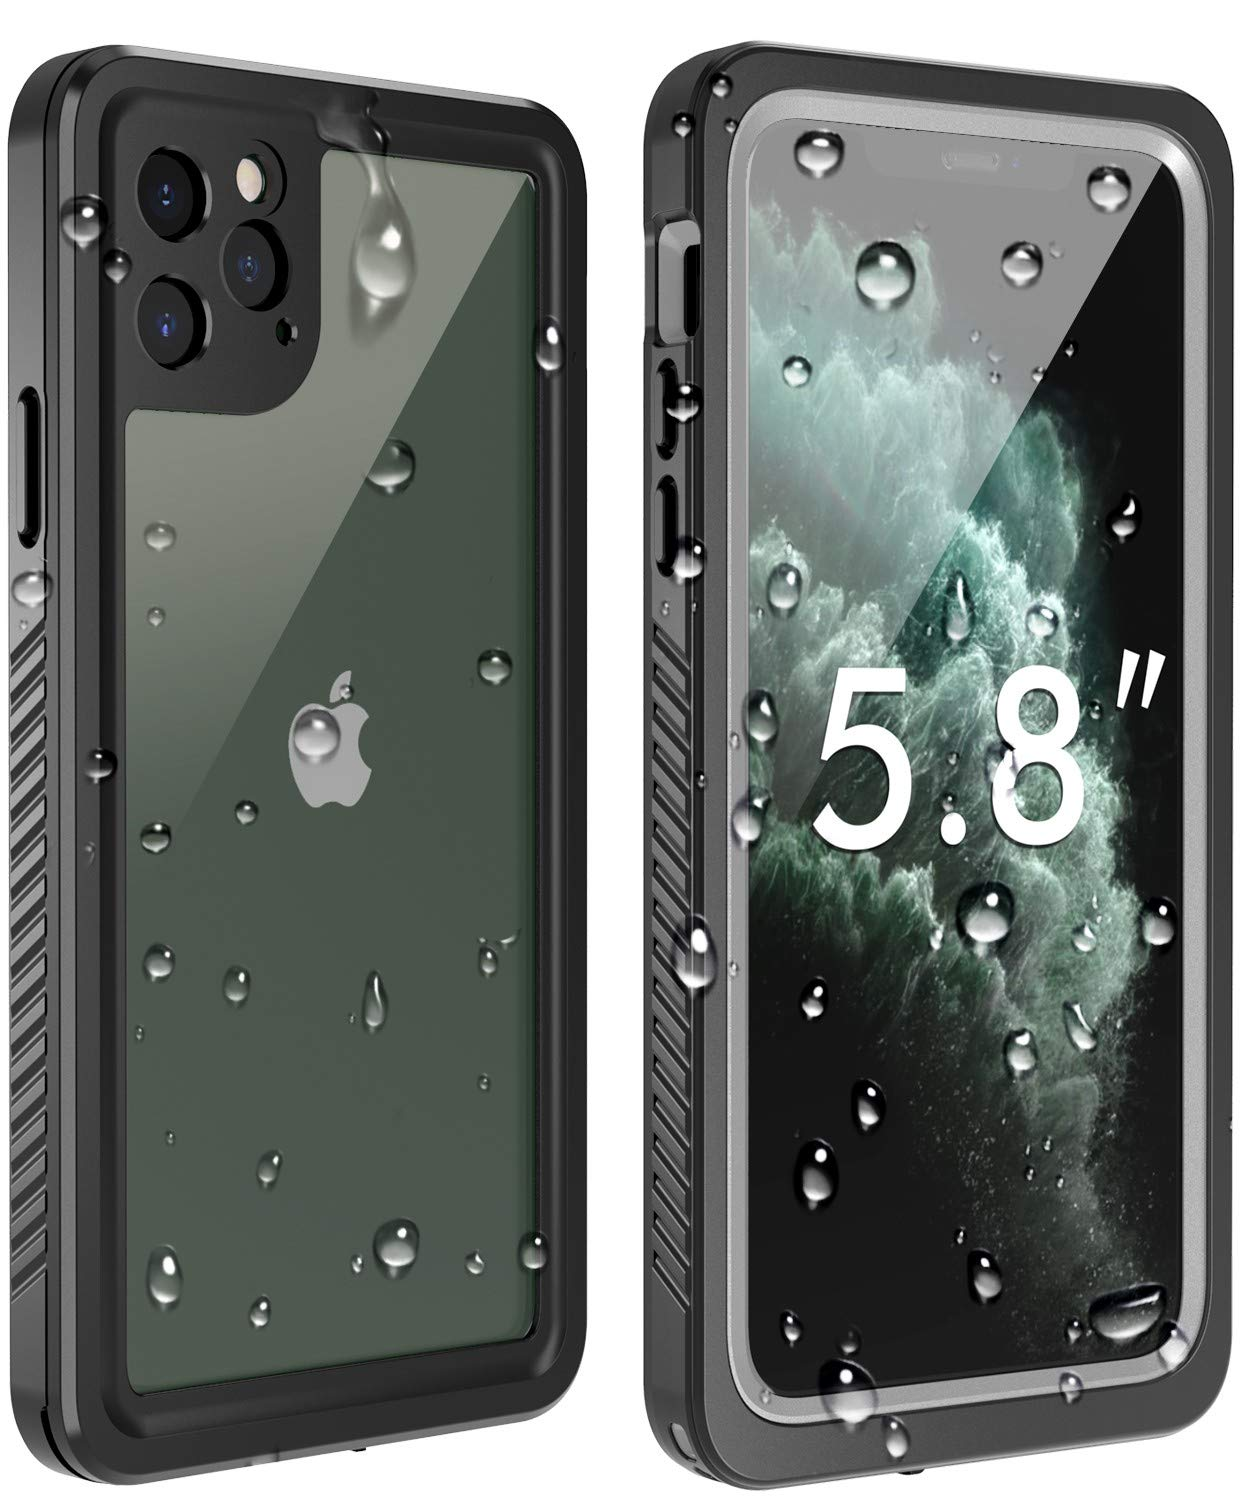 Temdan waterproof iPhone 11 case